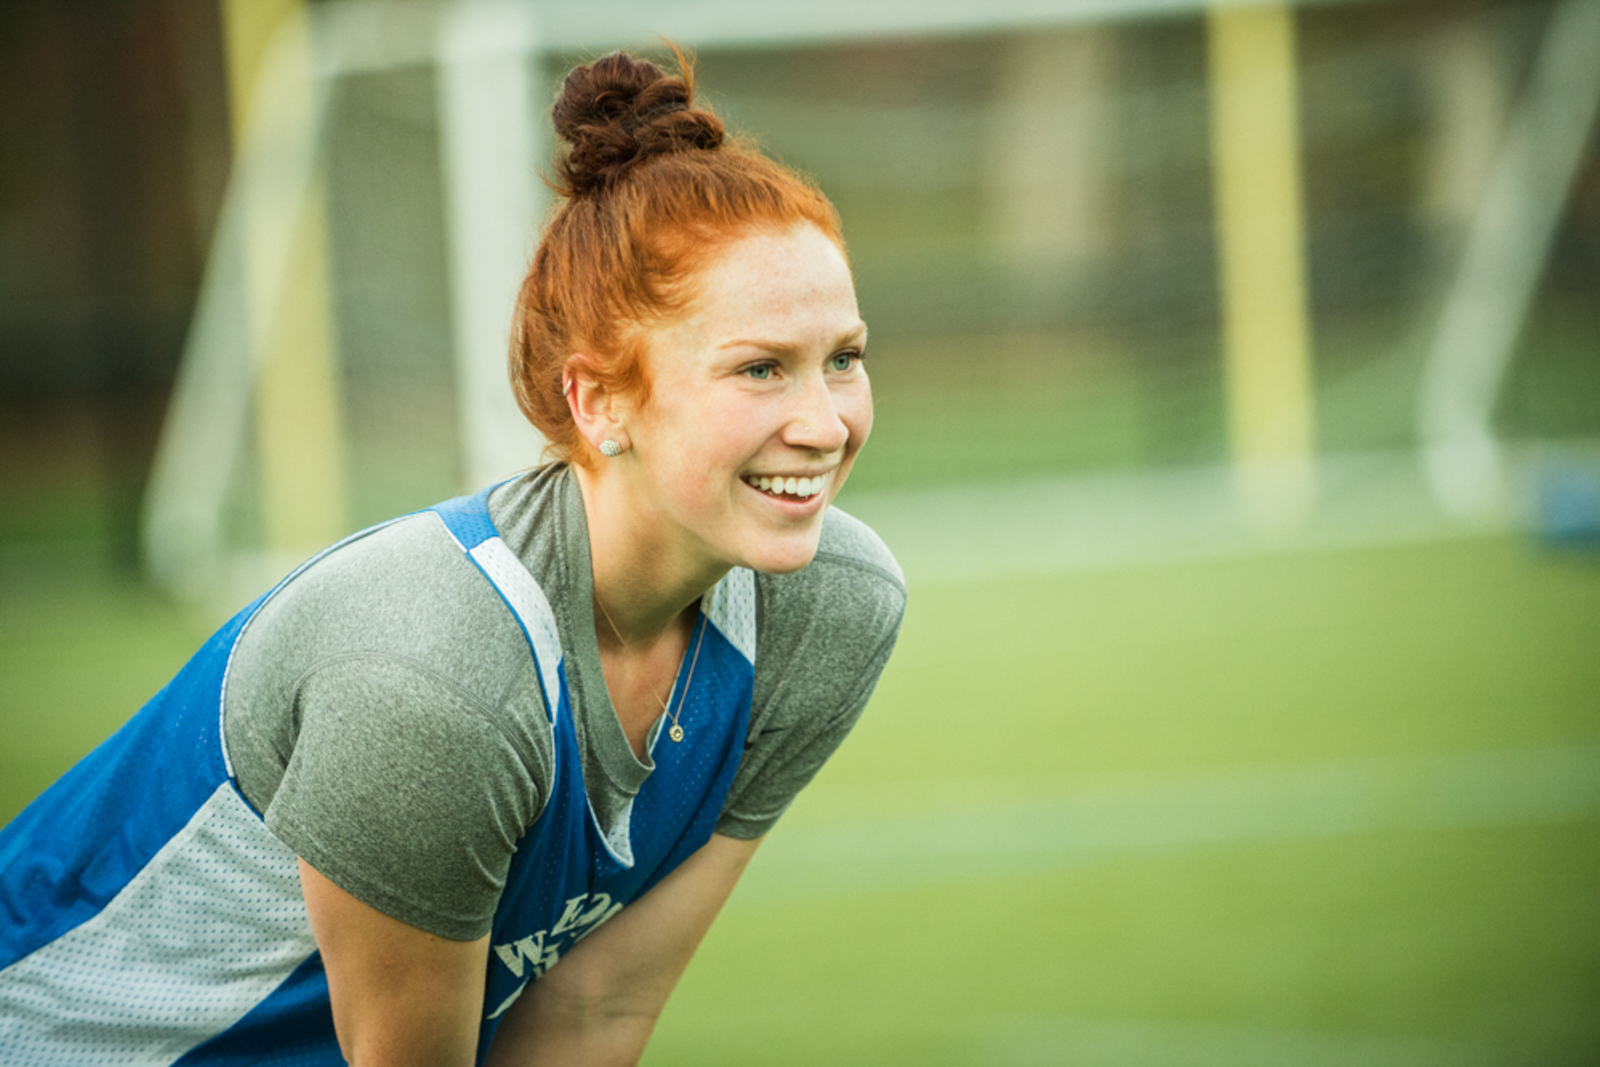 Student playing sports outdoors, smiling